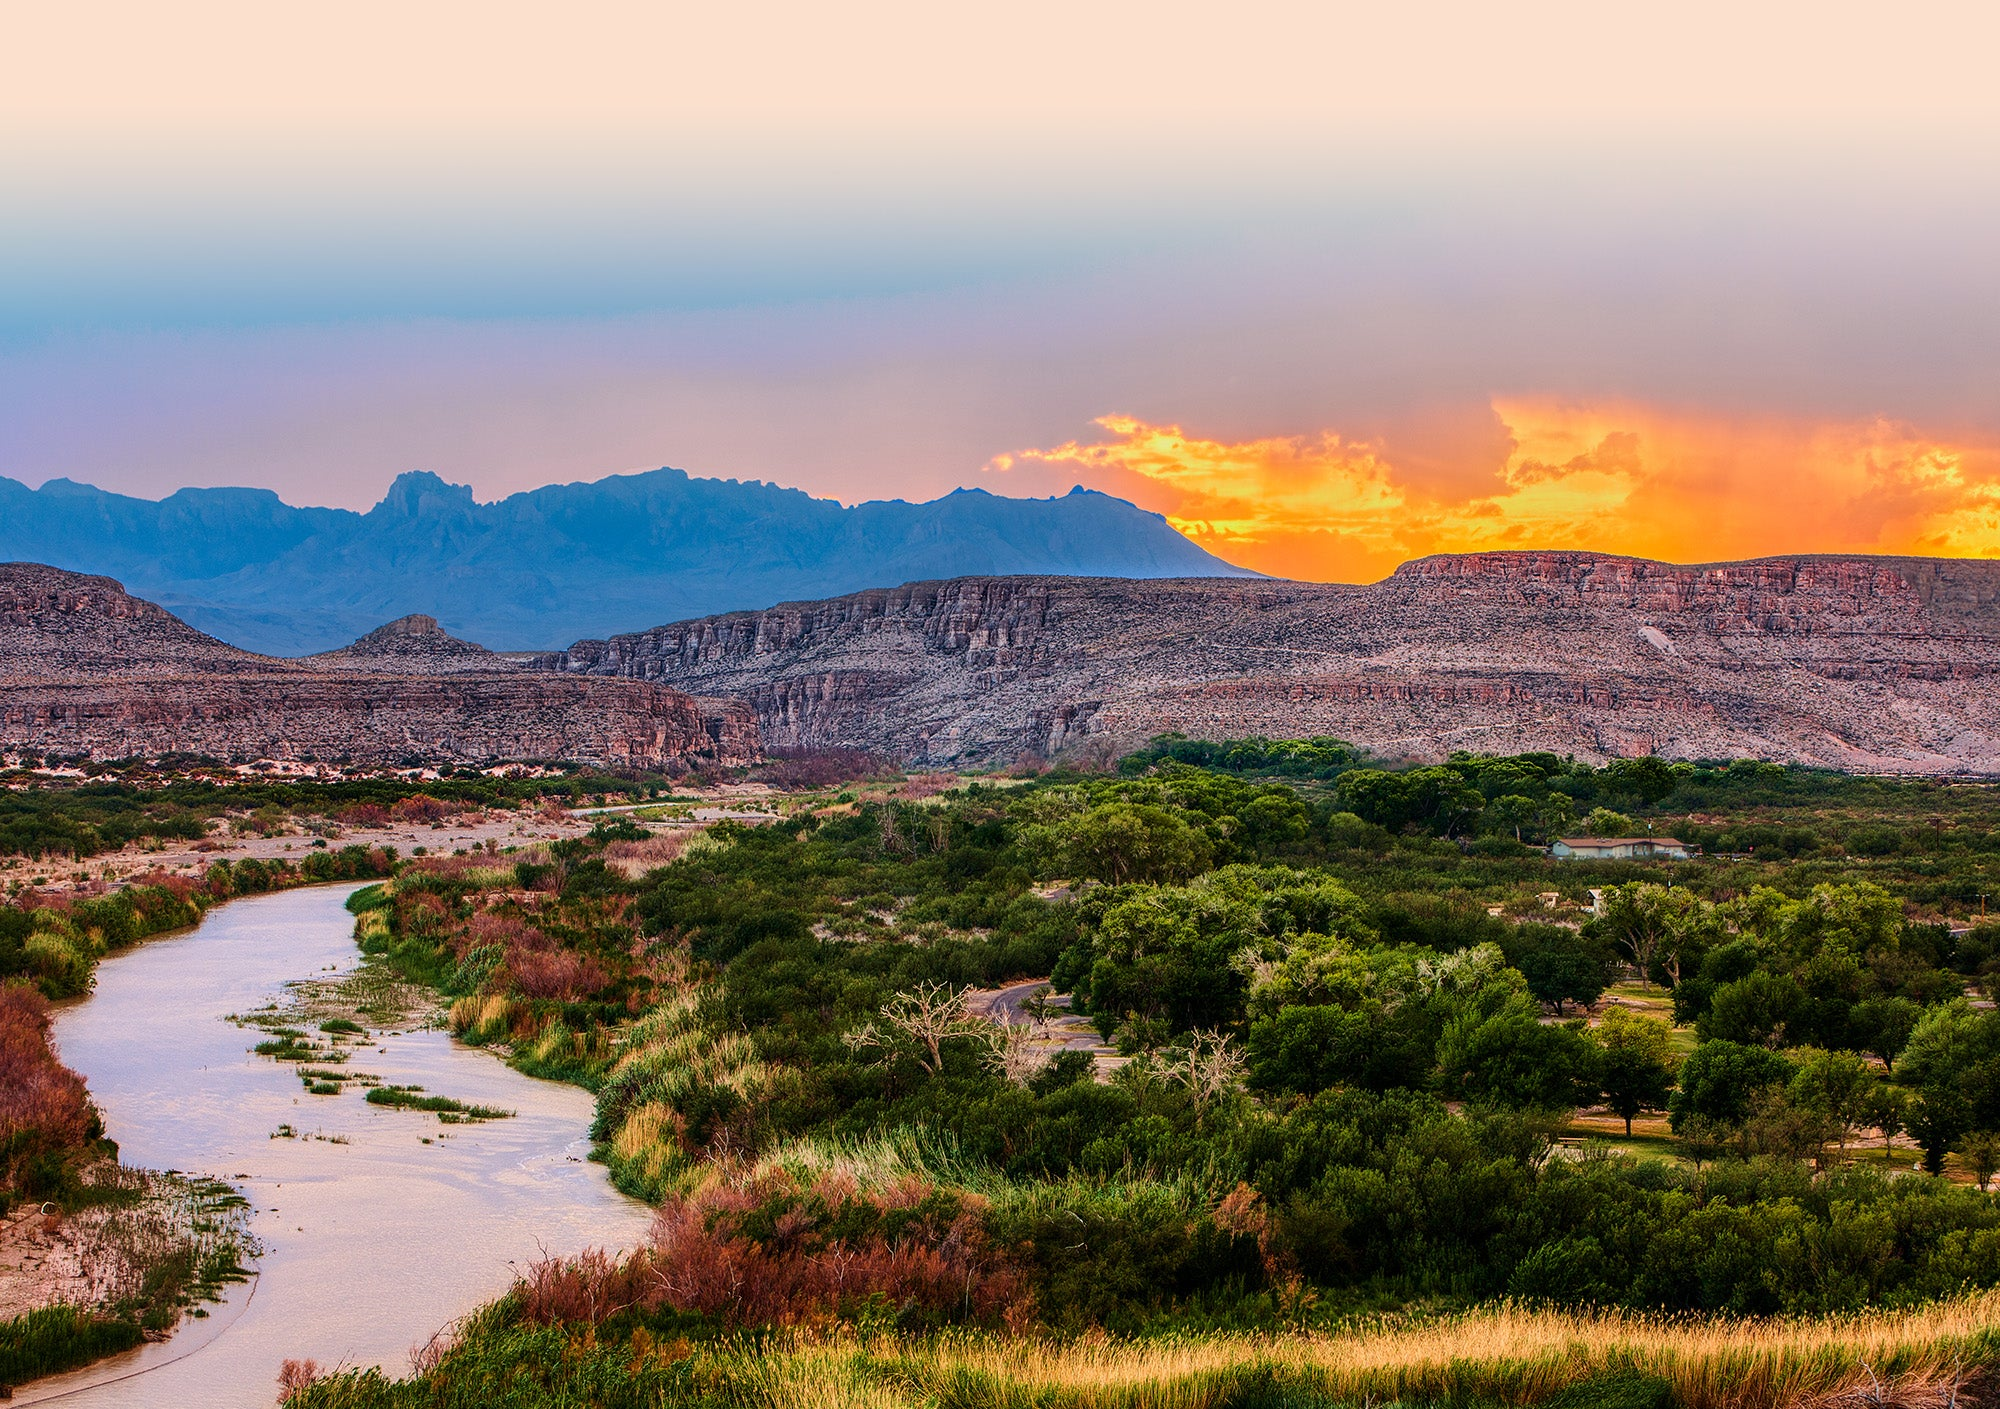 West Texas & The Big Bend